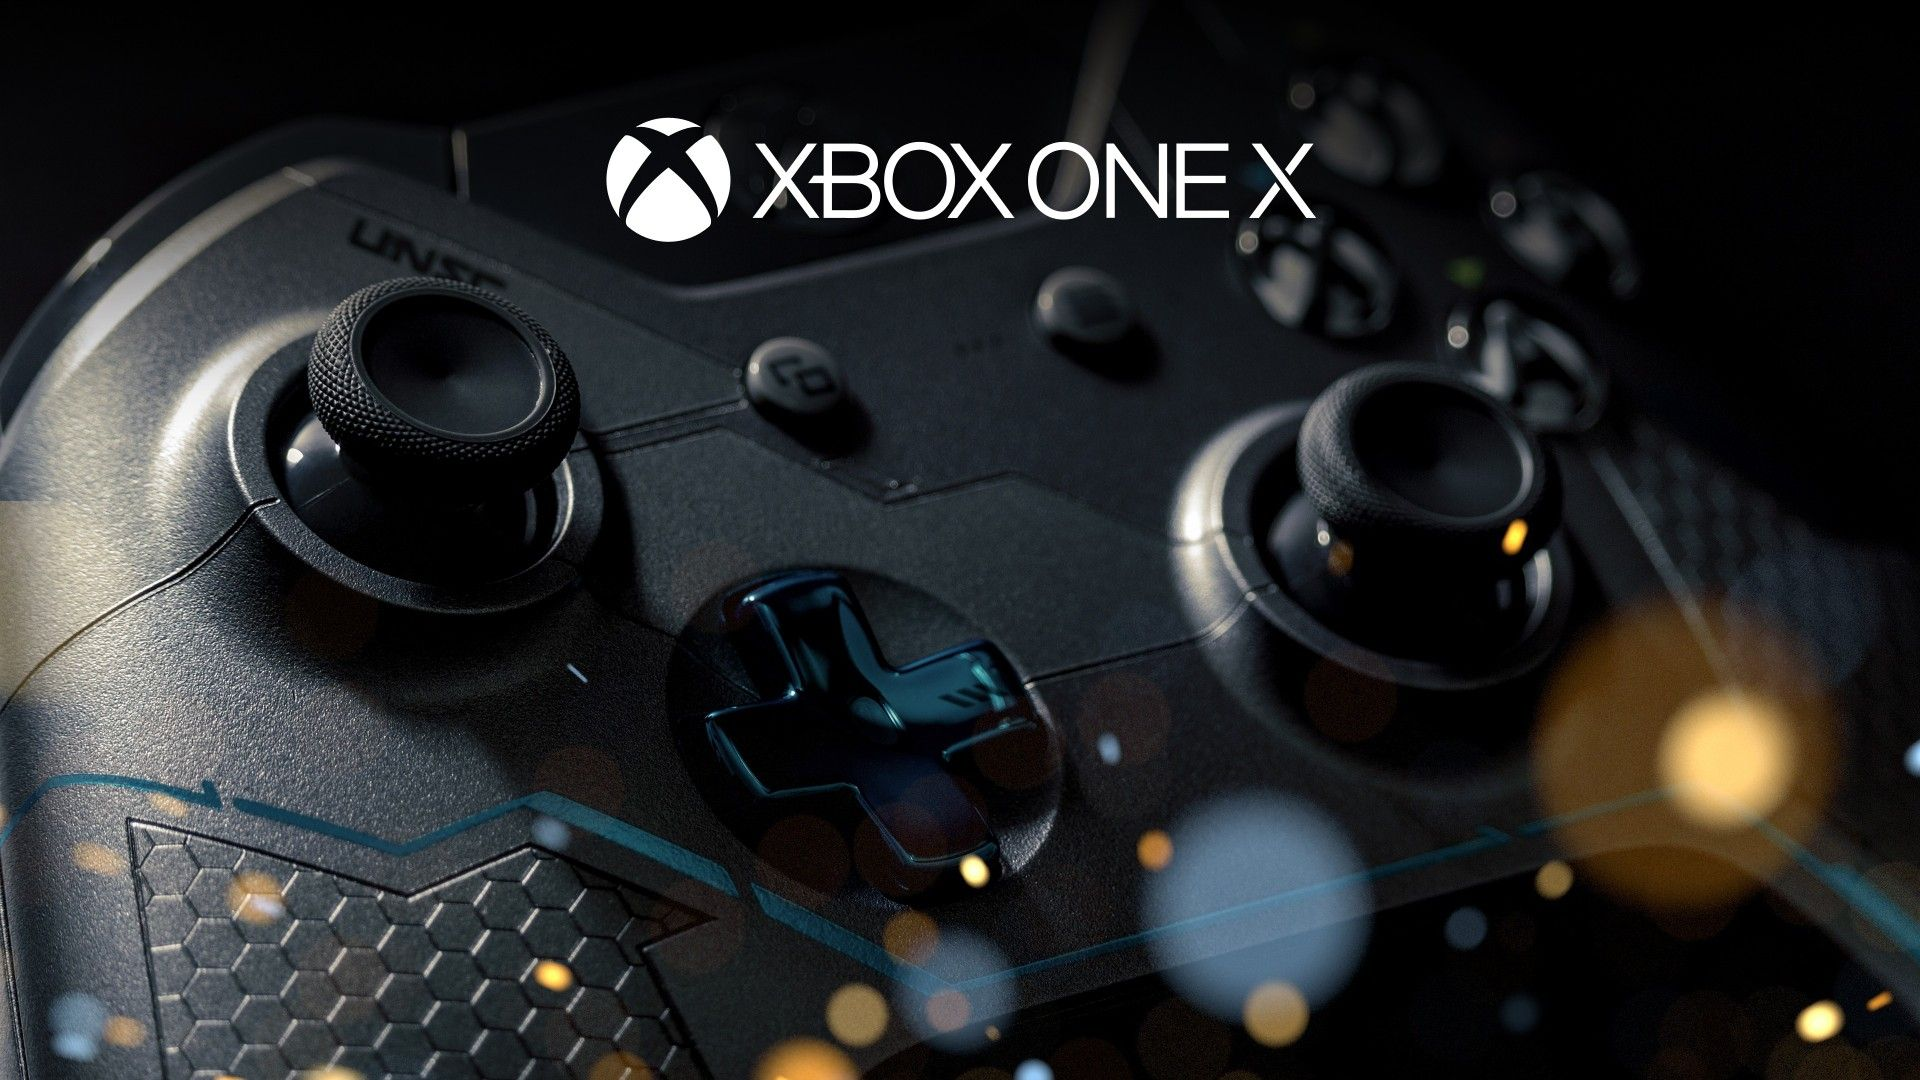 Xbox One Full Hd Wallpaper Xbox Xbox One Gaming Console